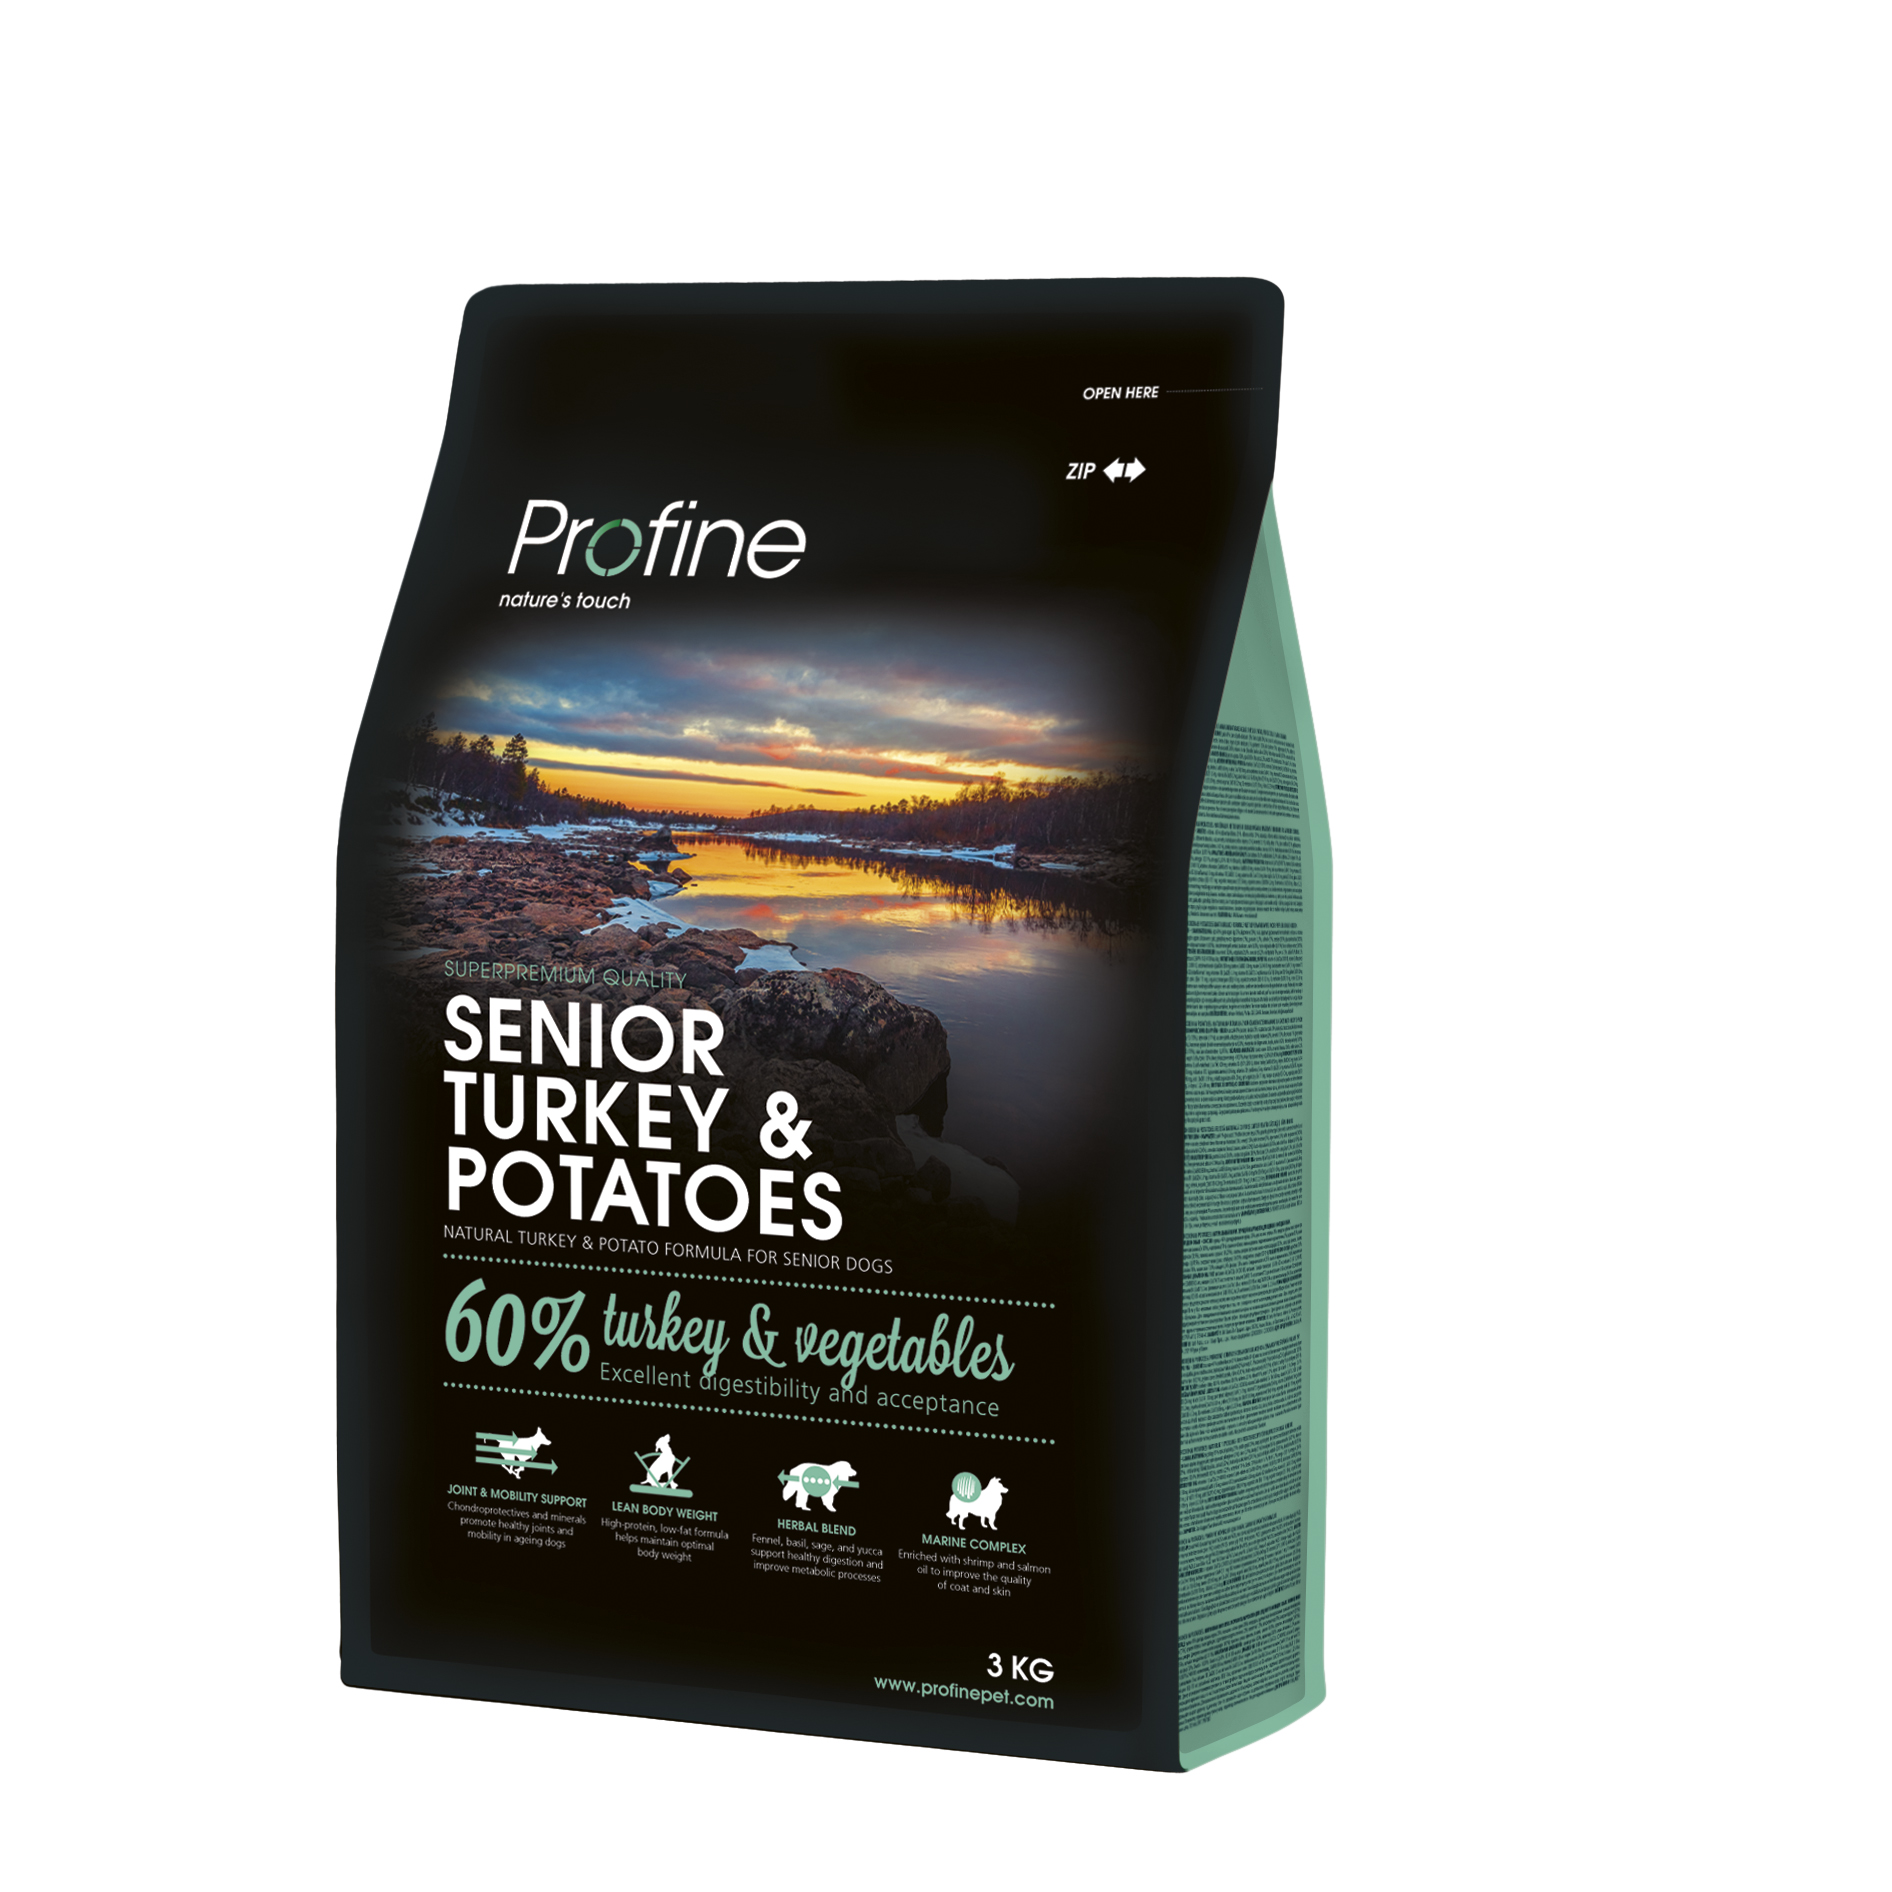 Profine Senior Turkey & Potatoes 3kg